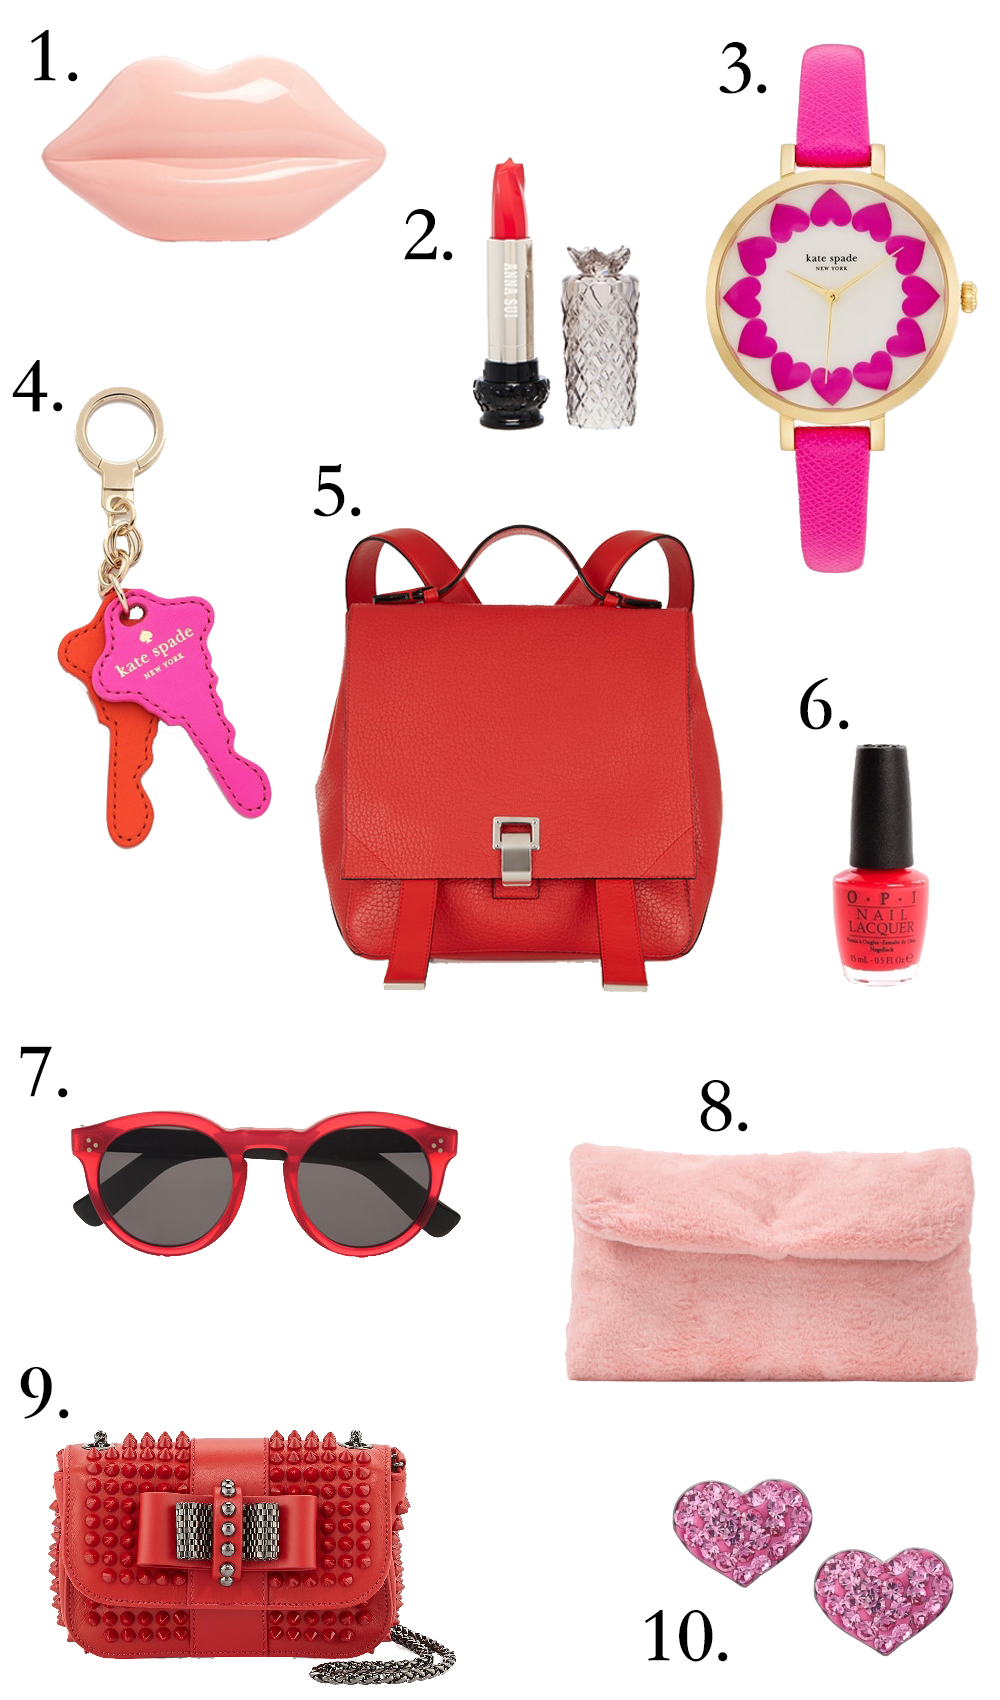 Valentine's day, red leather backpack, gift ideas, pink faux fur clutch, OPI red nail polish, Anna Sui makeup, kate spade, watches, hearts, lips, lip clutch, red sunglasses,